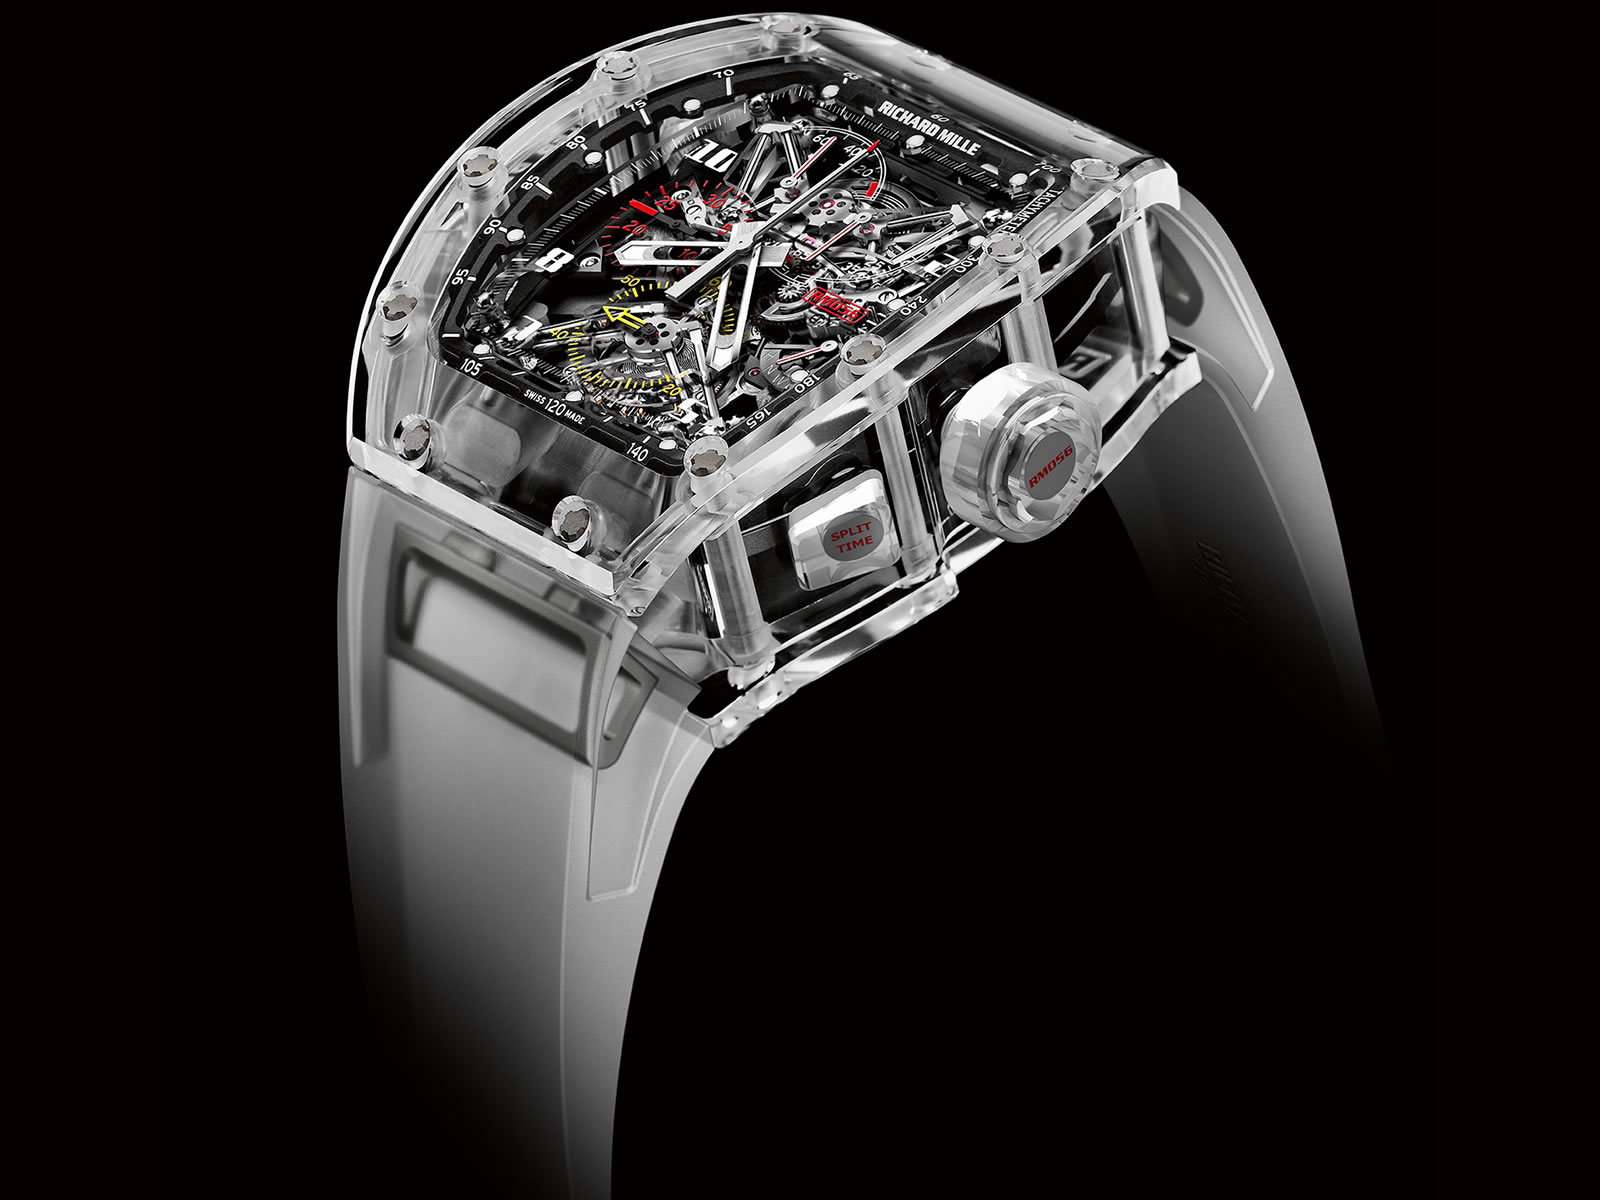 richard-mille-rm-056-tourbillon-split-seconds-chronograph-sapphire-felipe-massa-2-.jpg